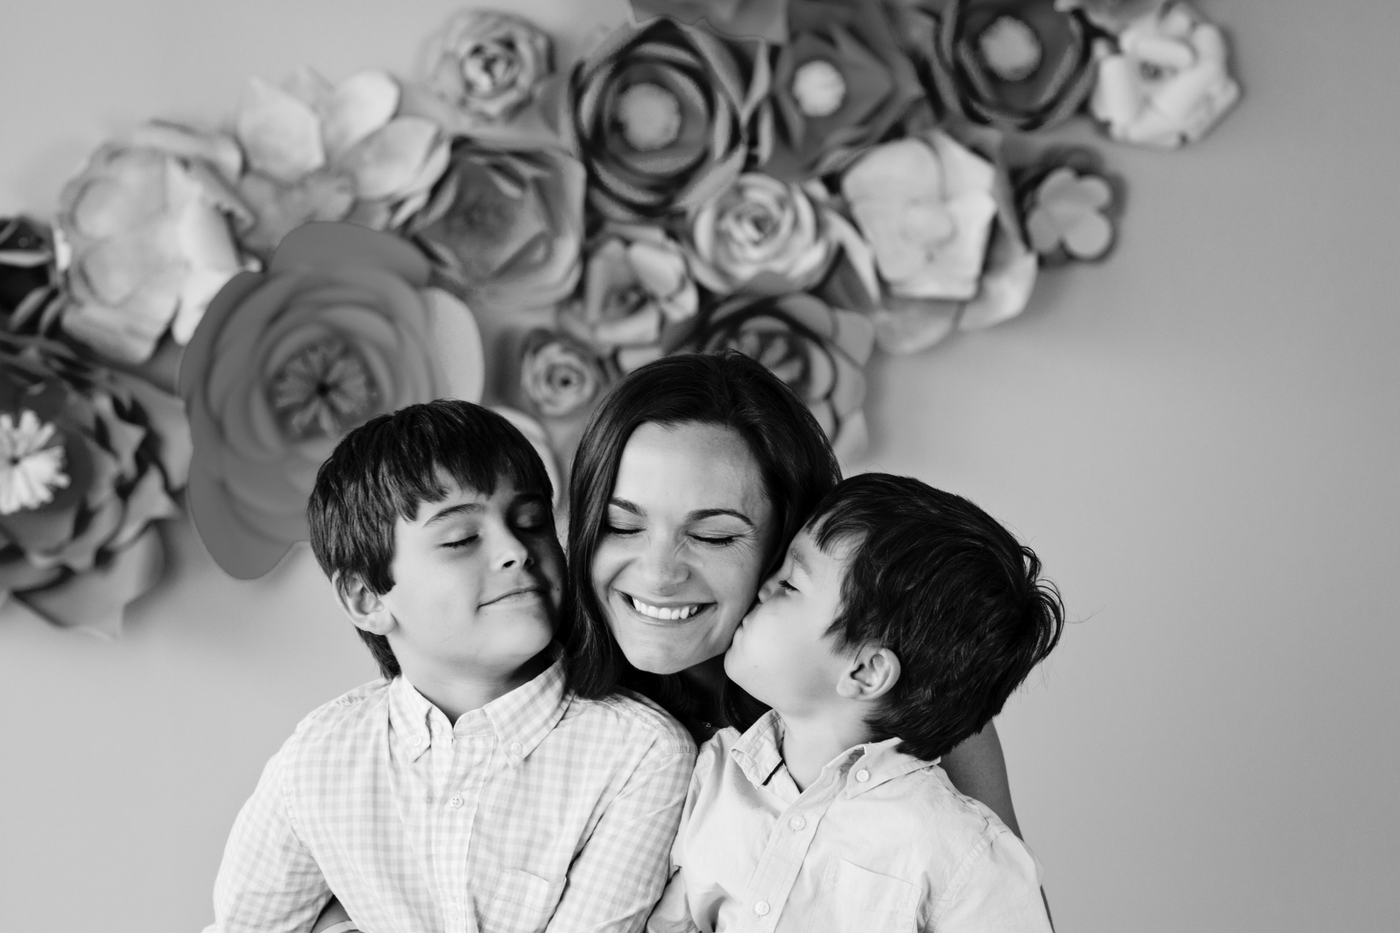 Mother and Sons Photo Idea